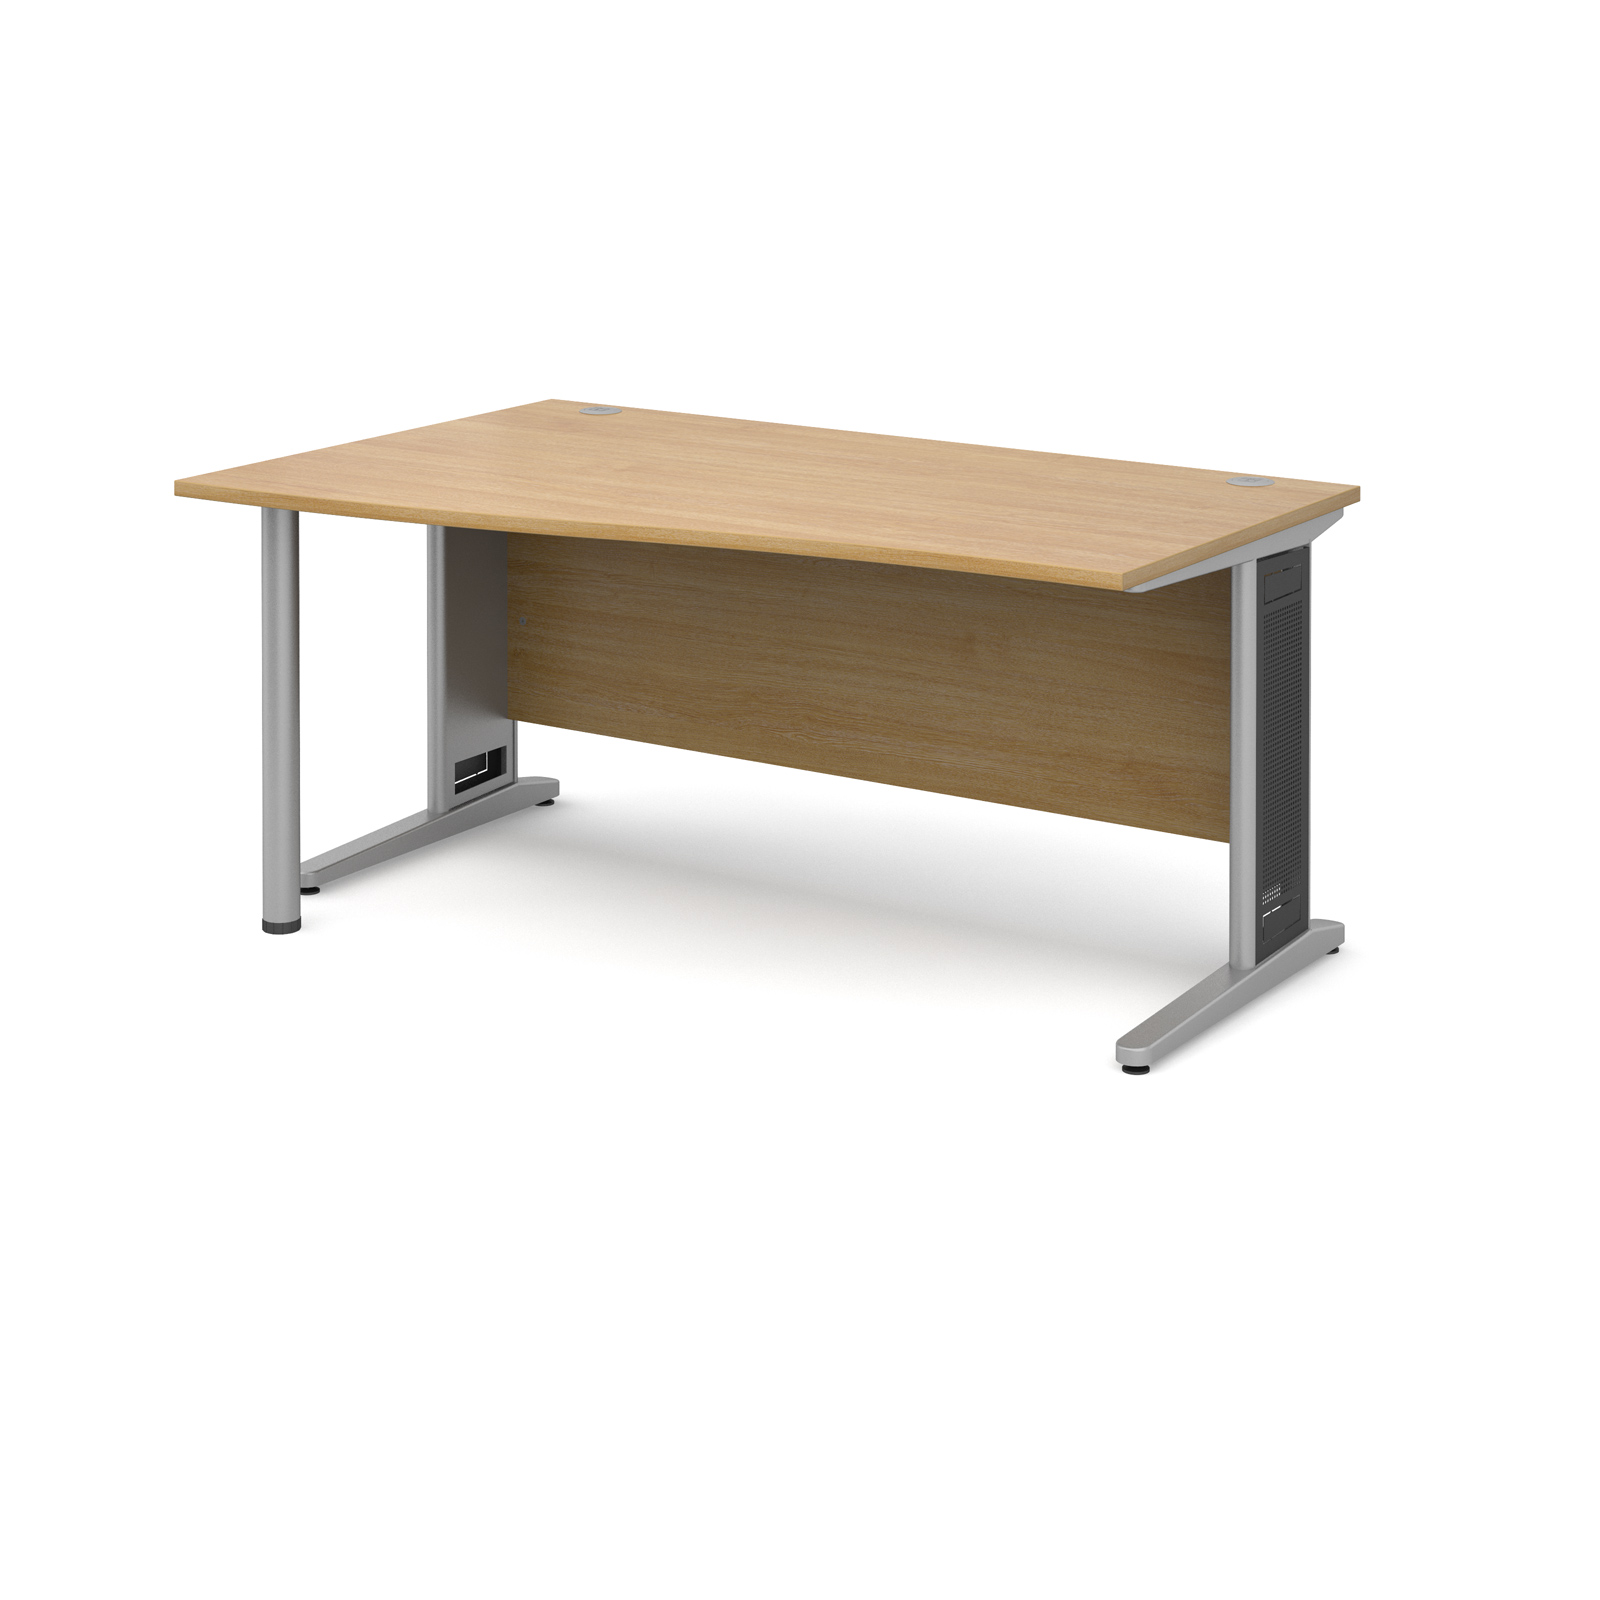 Largo left hand wave desk 1600mm - silver cantilever frame with removable grill, oak top